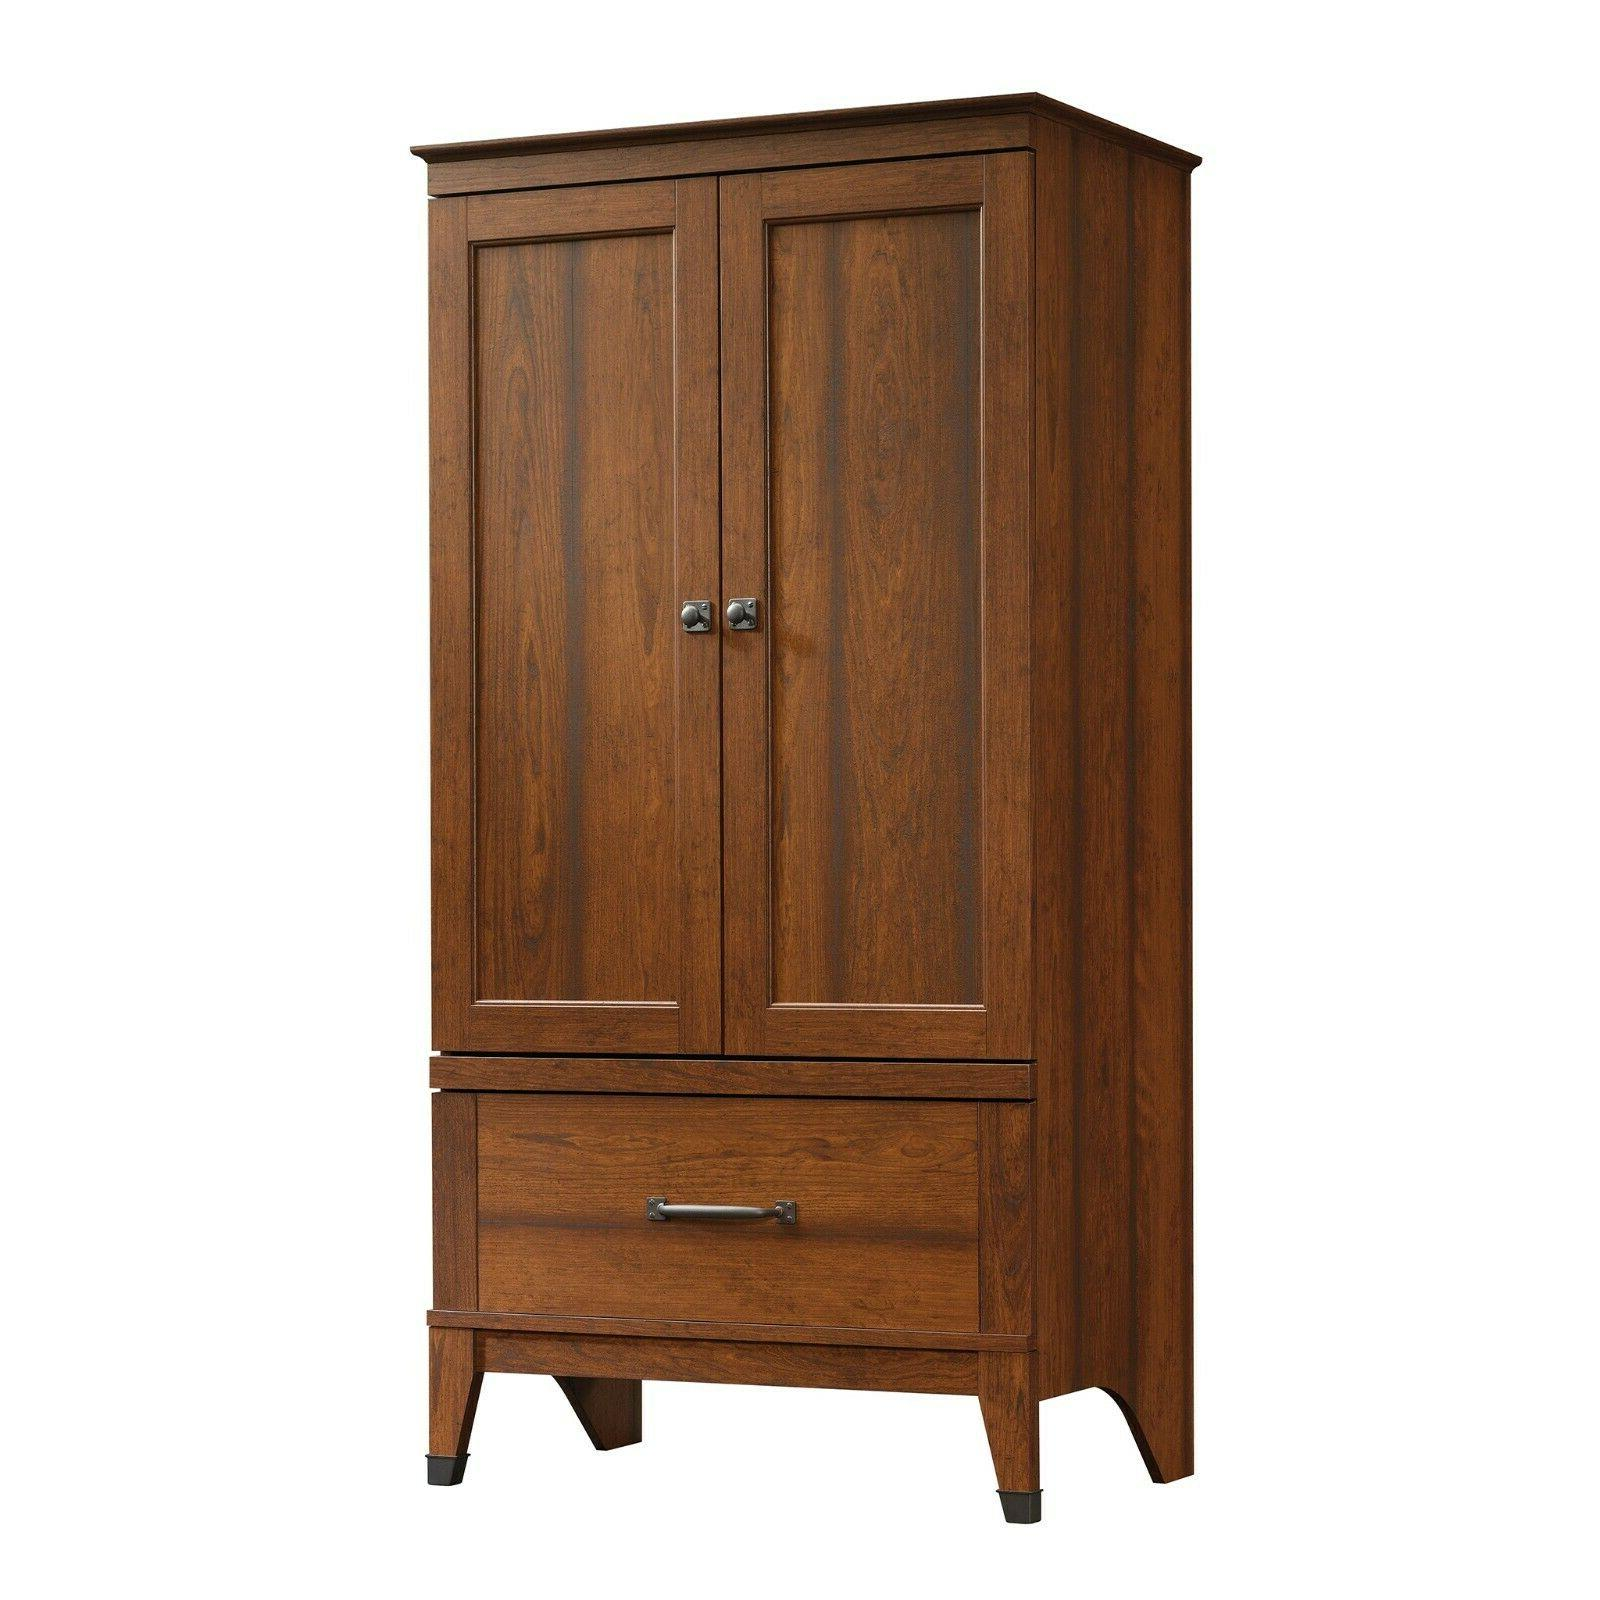 Cherry Finish Wardrobe Bedroom Closet With